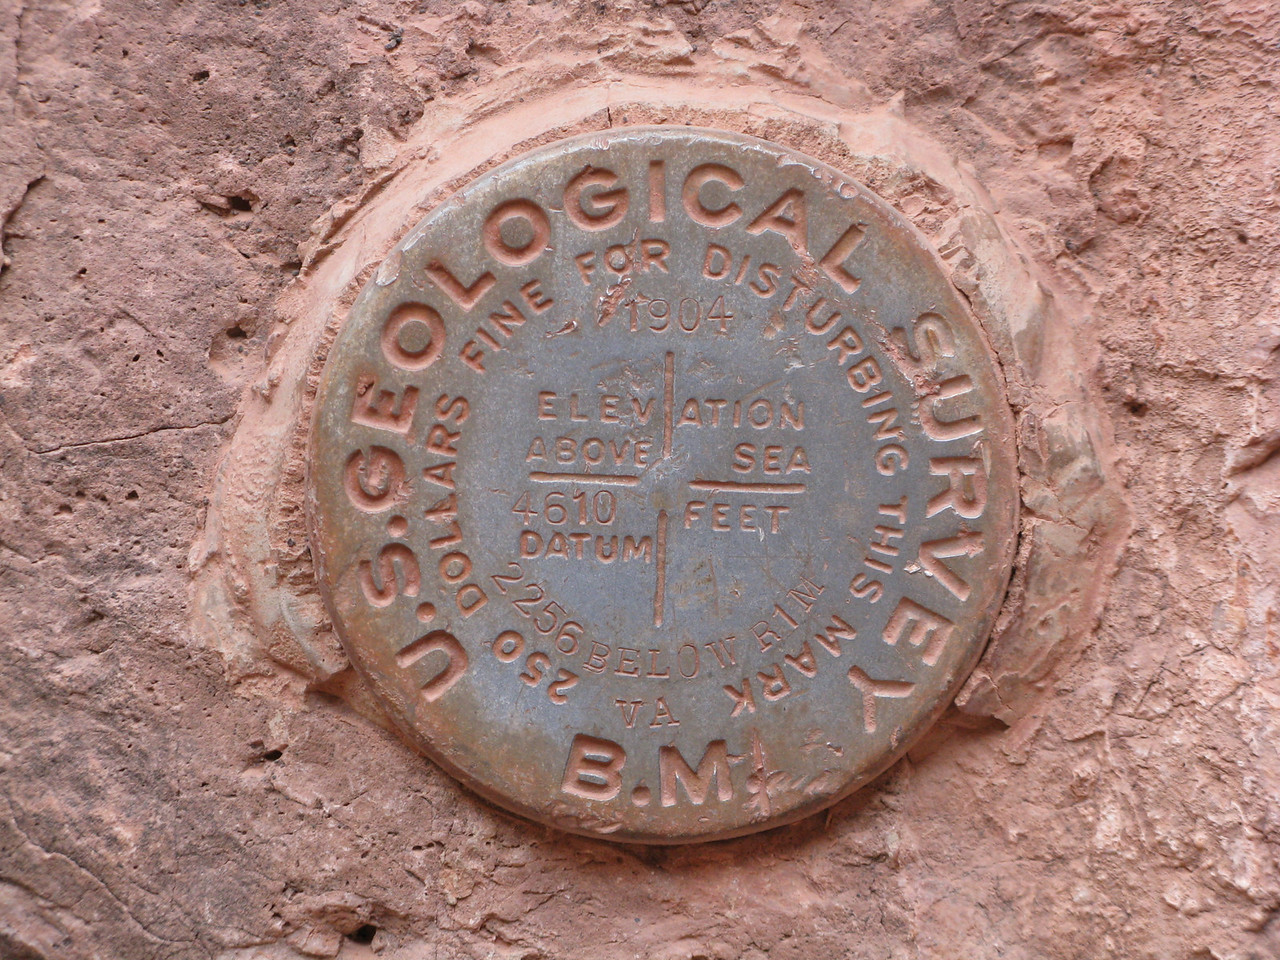 US Geological survey marker.  4610 feet above sea level.  2256 feet below the South Rim.  The marker is placed at a point about half way up in elevation from the river to the rim.